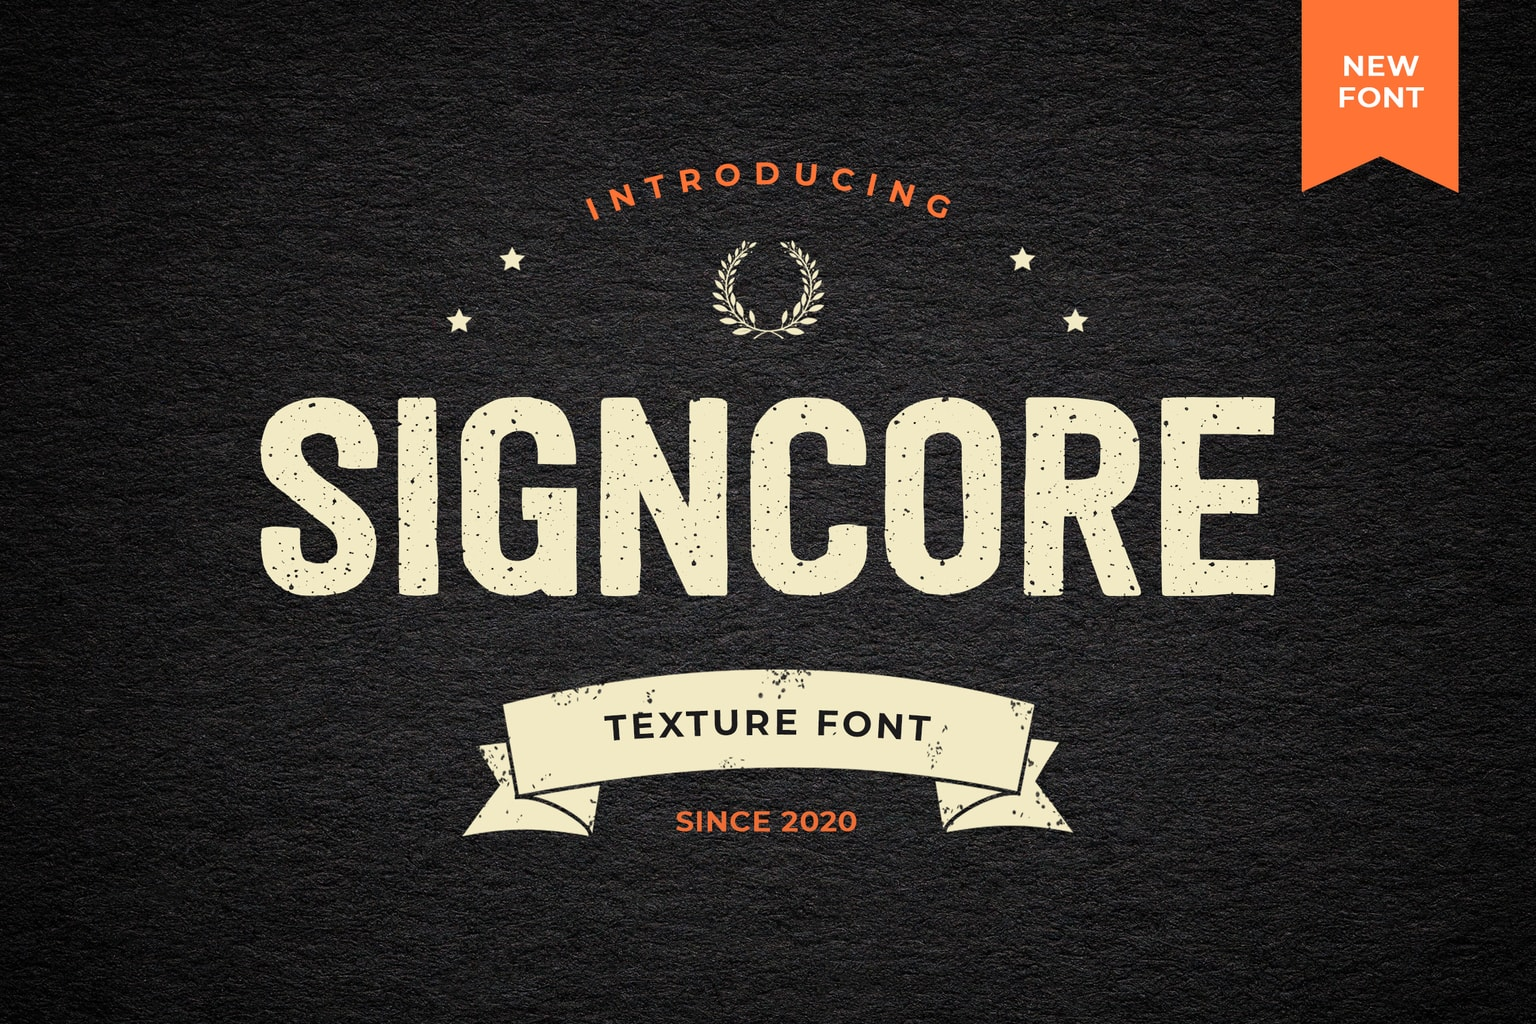 fonts signcore texture